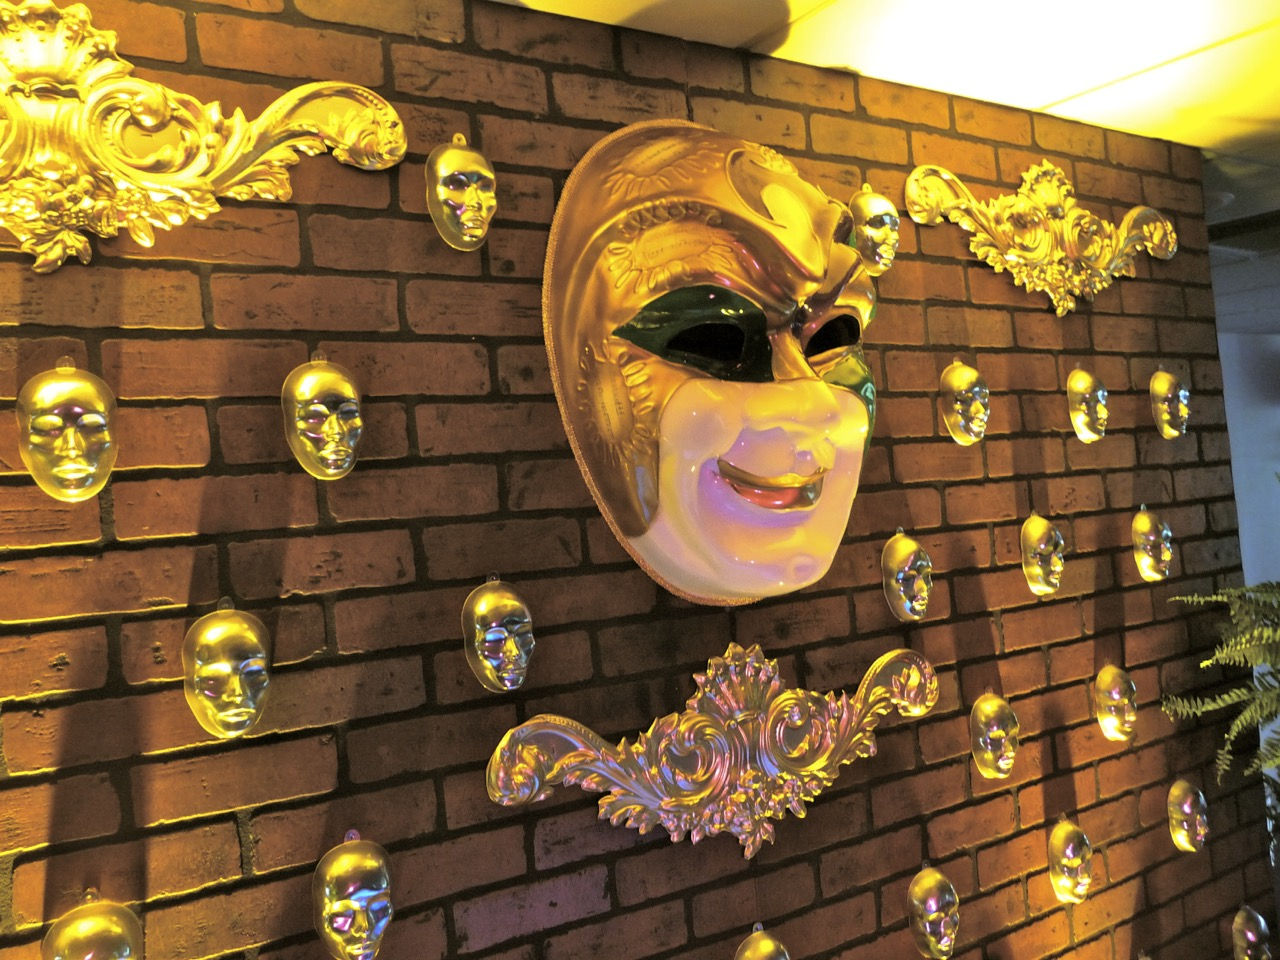 Eggsotic+Events+Masquerade+Theme+Decor+and+Lighting+08.jpg